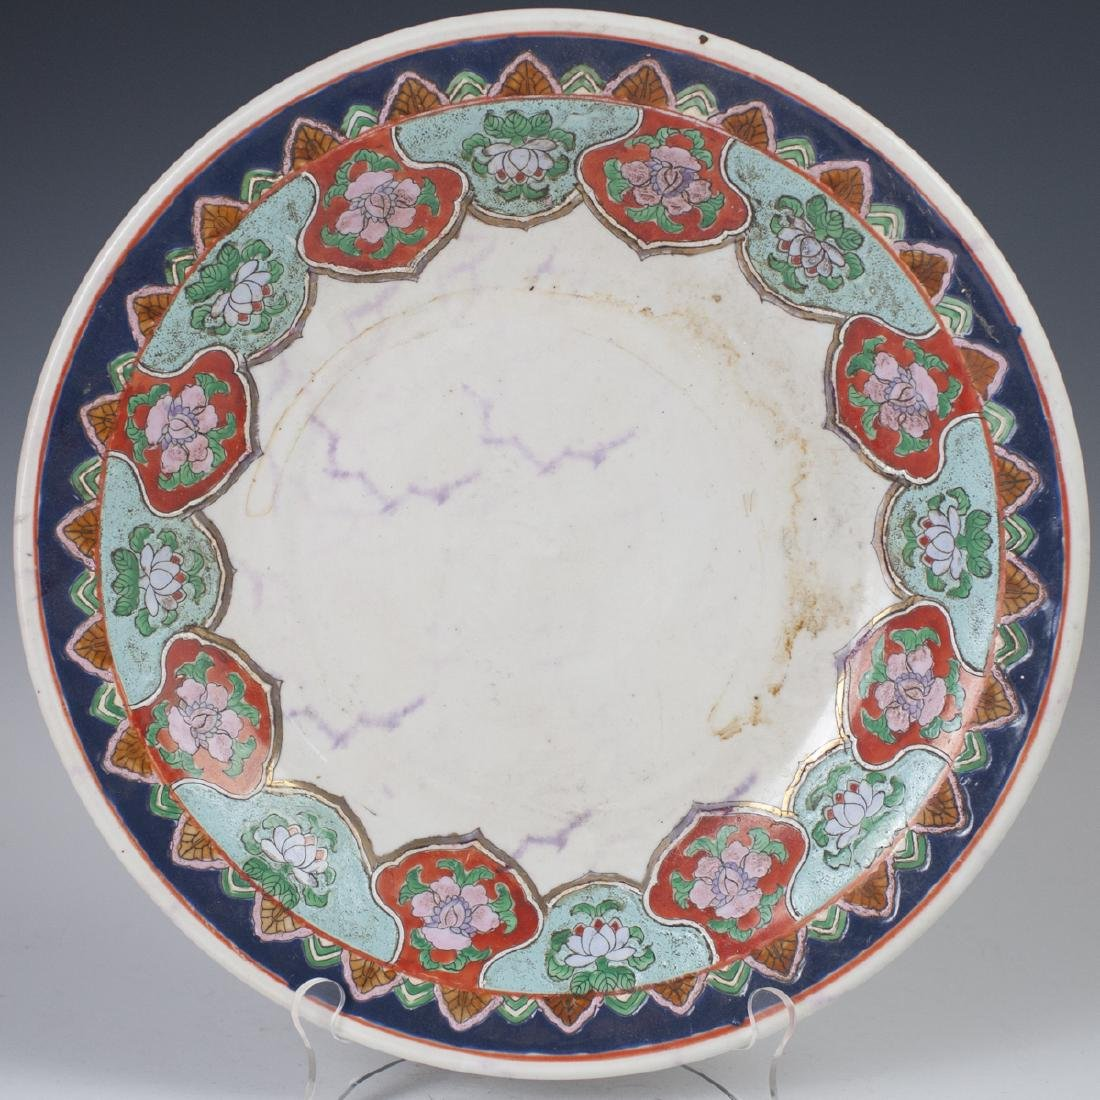 Antique Chinese Enameled Porcelain Charger Bowl